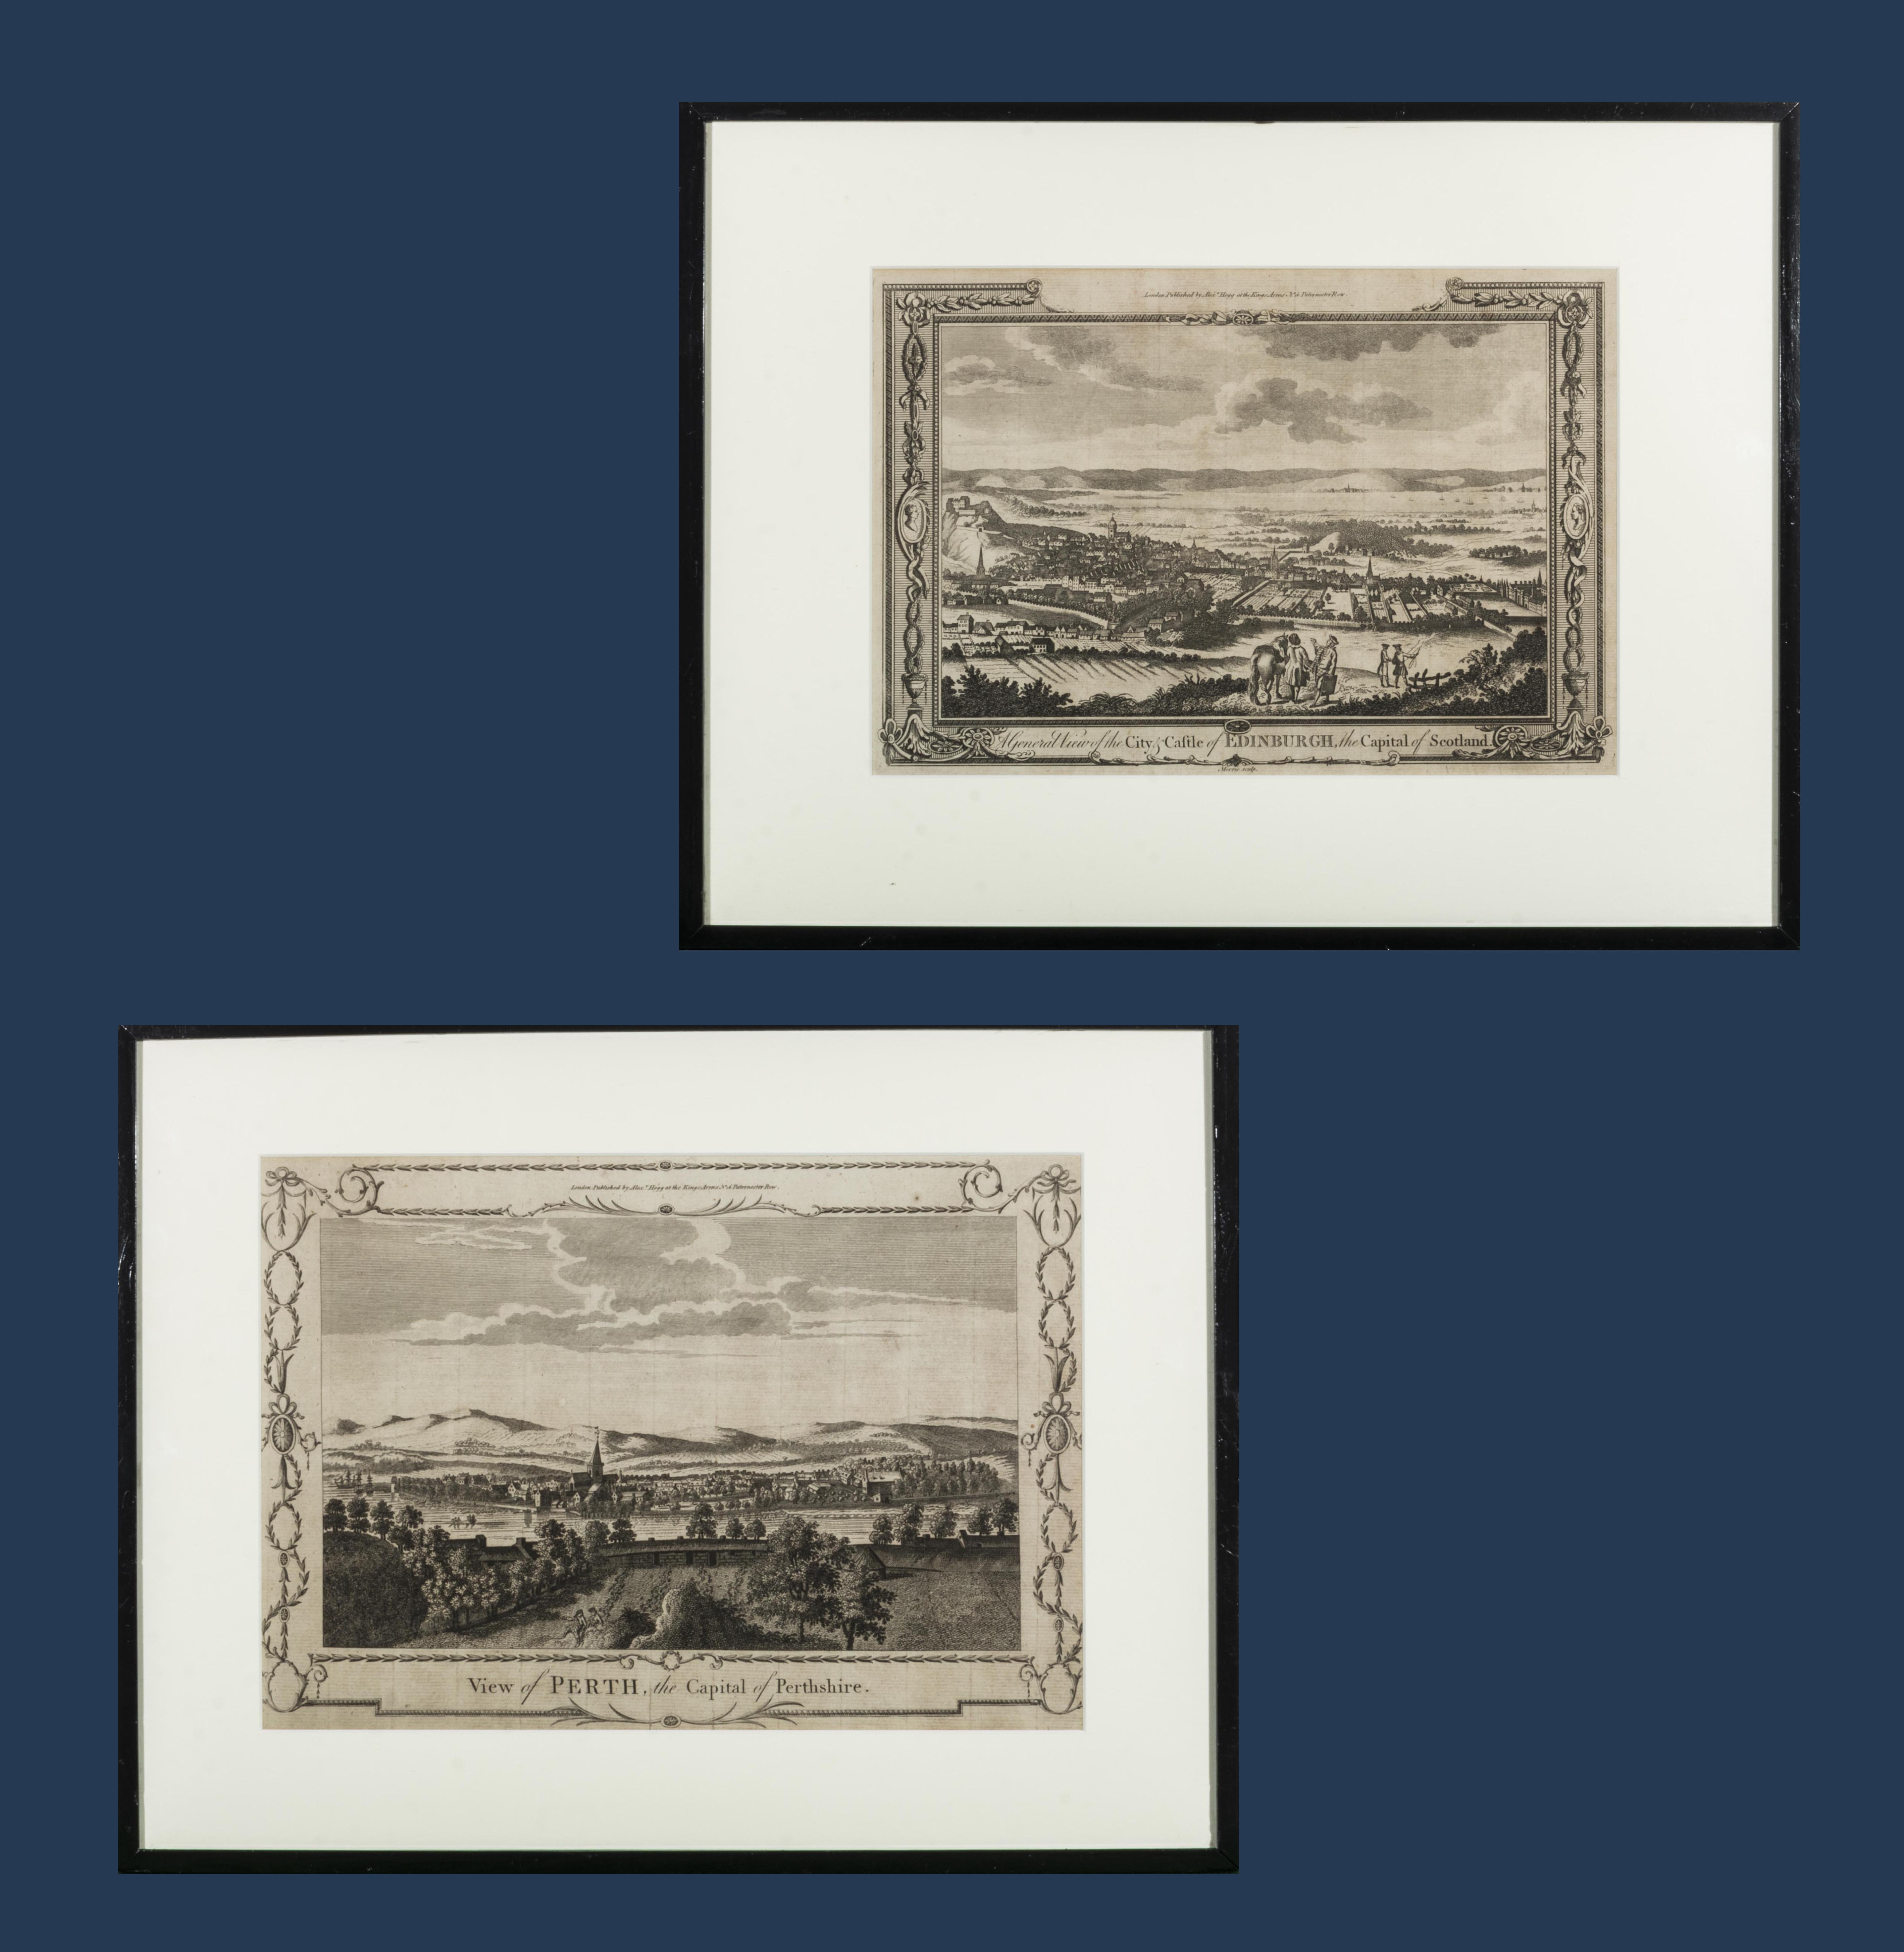 Lot 49 - A pair of early framed engravings depicting Edinburgh and Perthshire